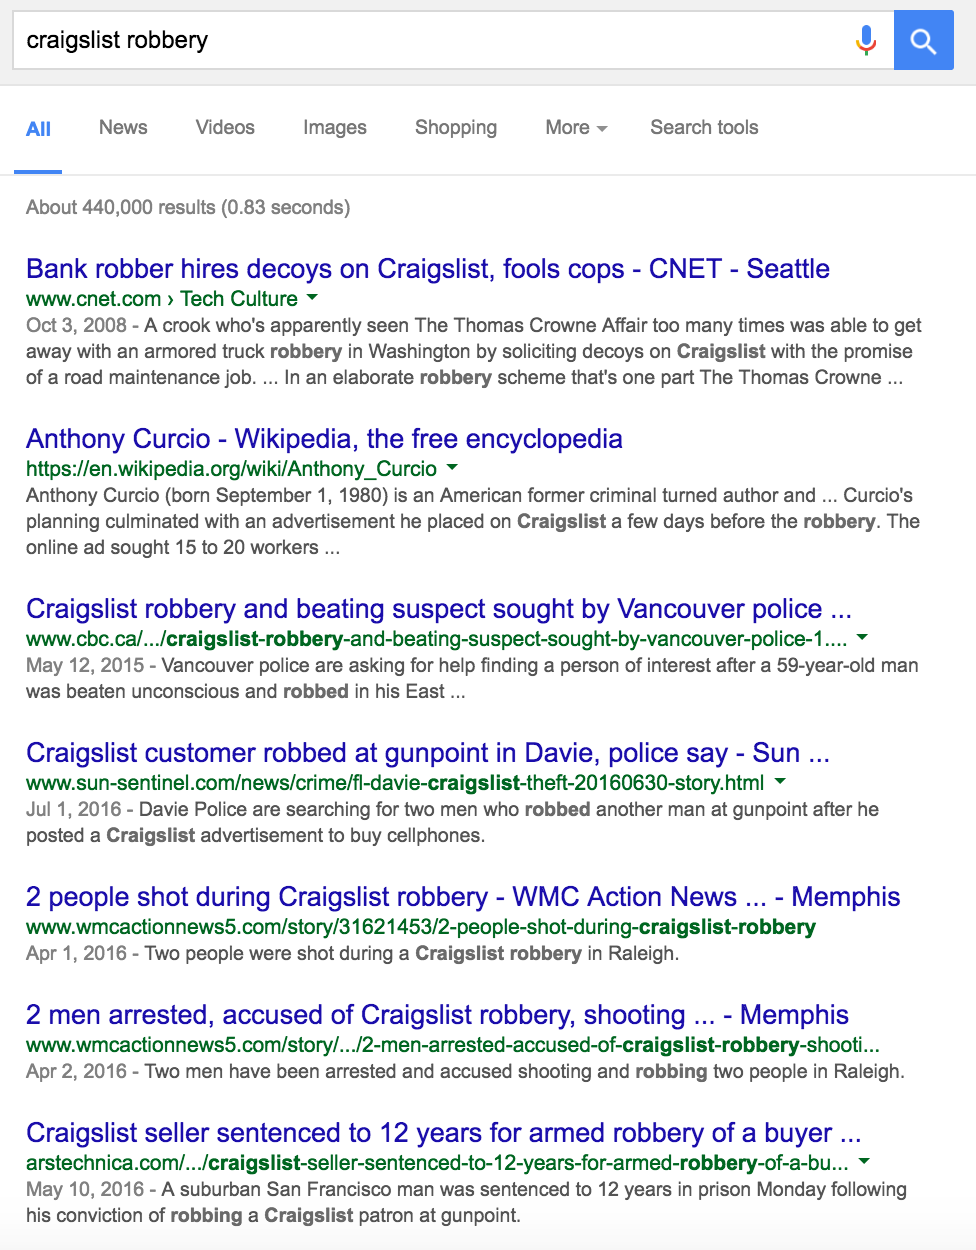 But Hey Craigslist Has Its Challenges A Simple Search For Robbery Turns Up The Below